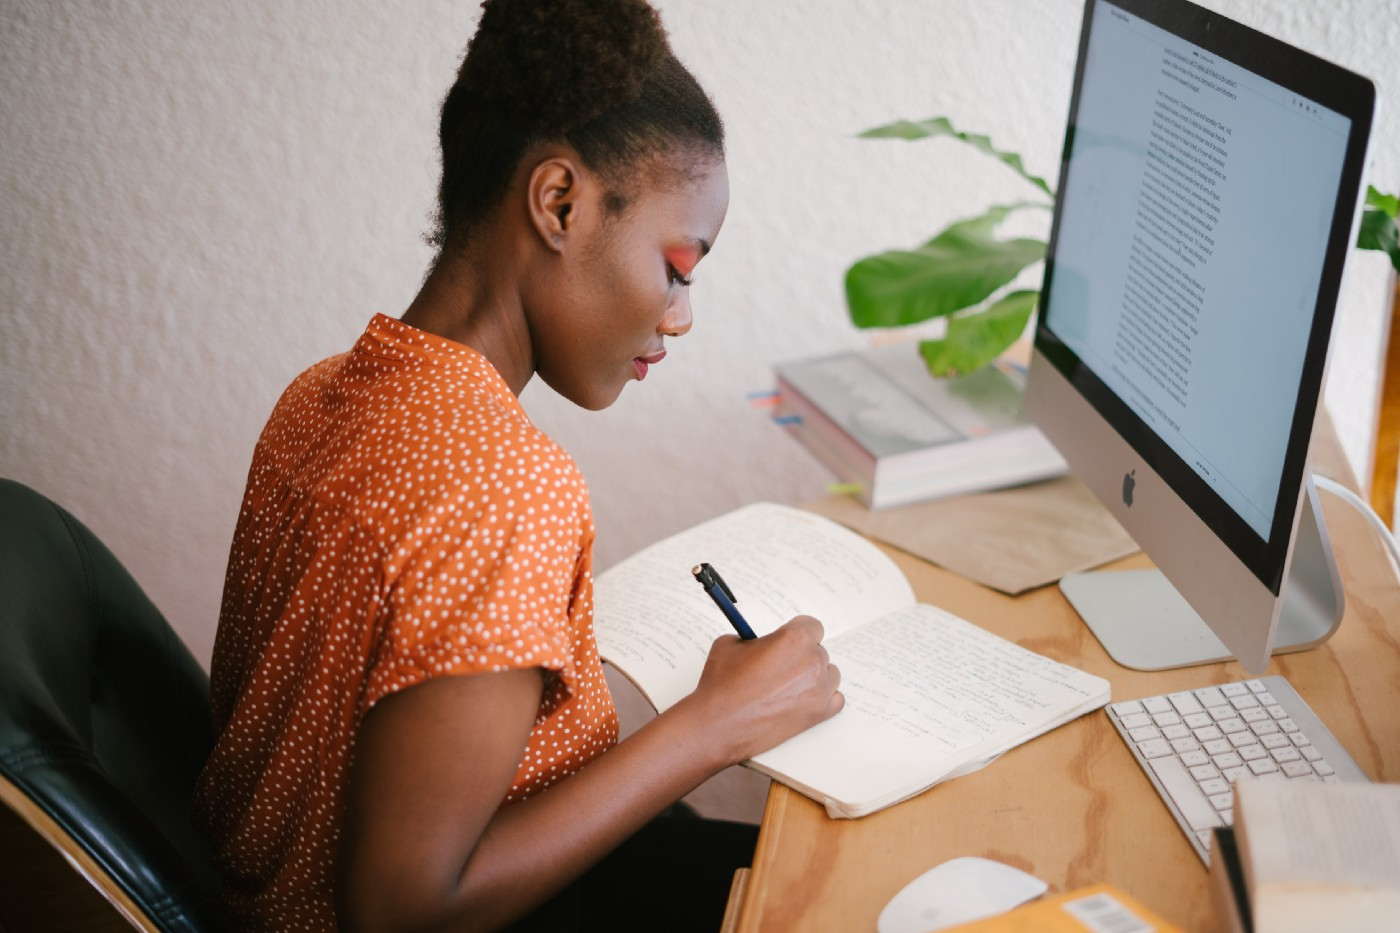 An African girl sitting down and writing into her notepad in front of a Mac computer screen